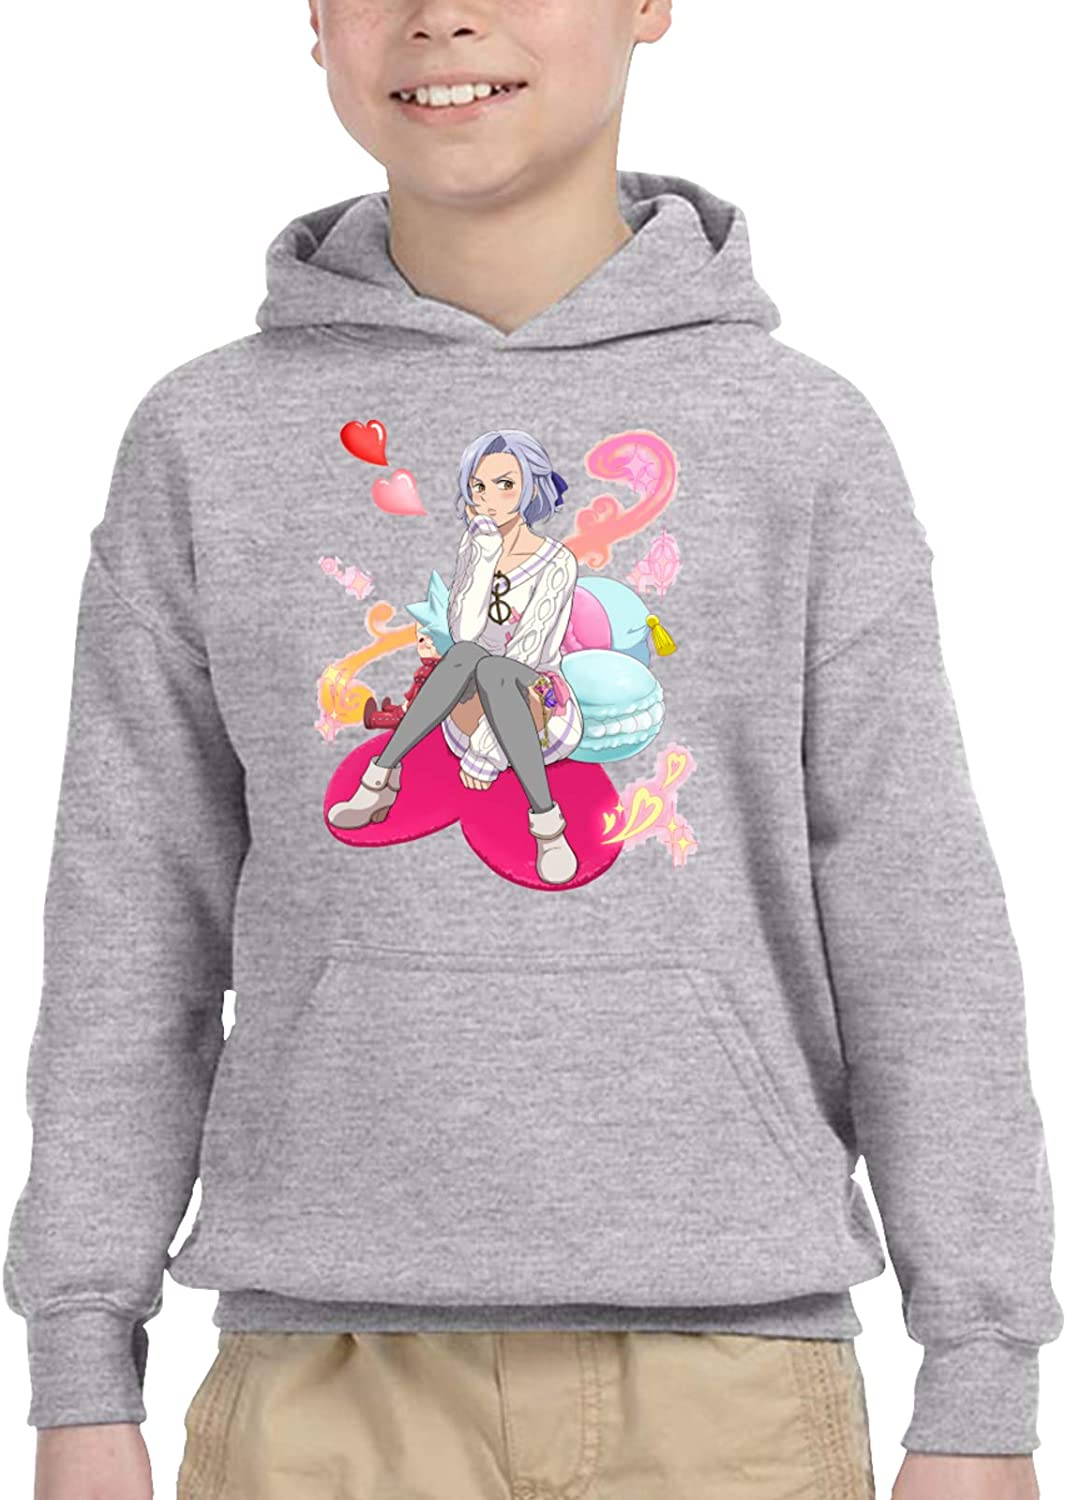 Jericho The Seven Deadly Sins Youth Pullover 3D Custo Boys Factory outlet Max 60% OFF Print